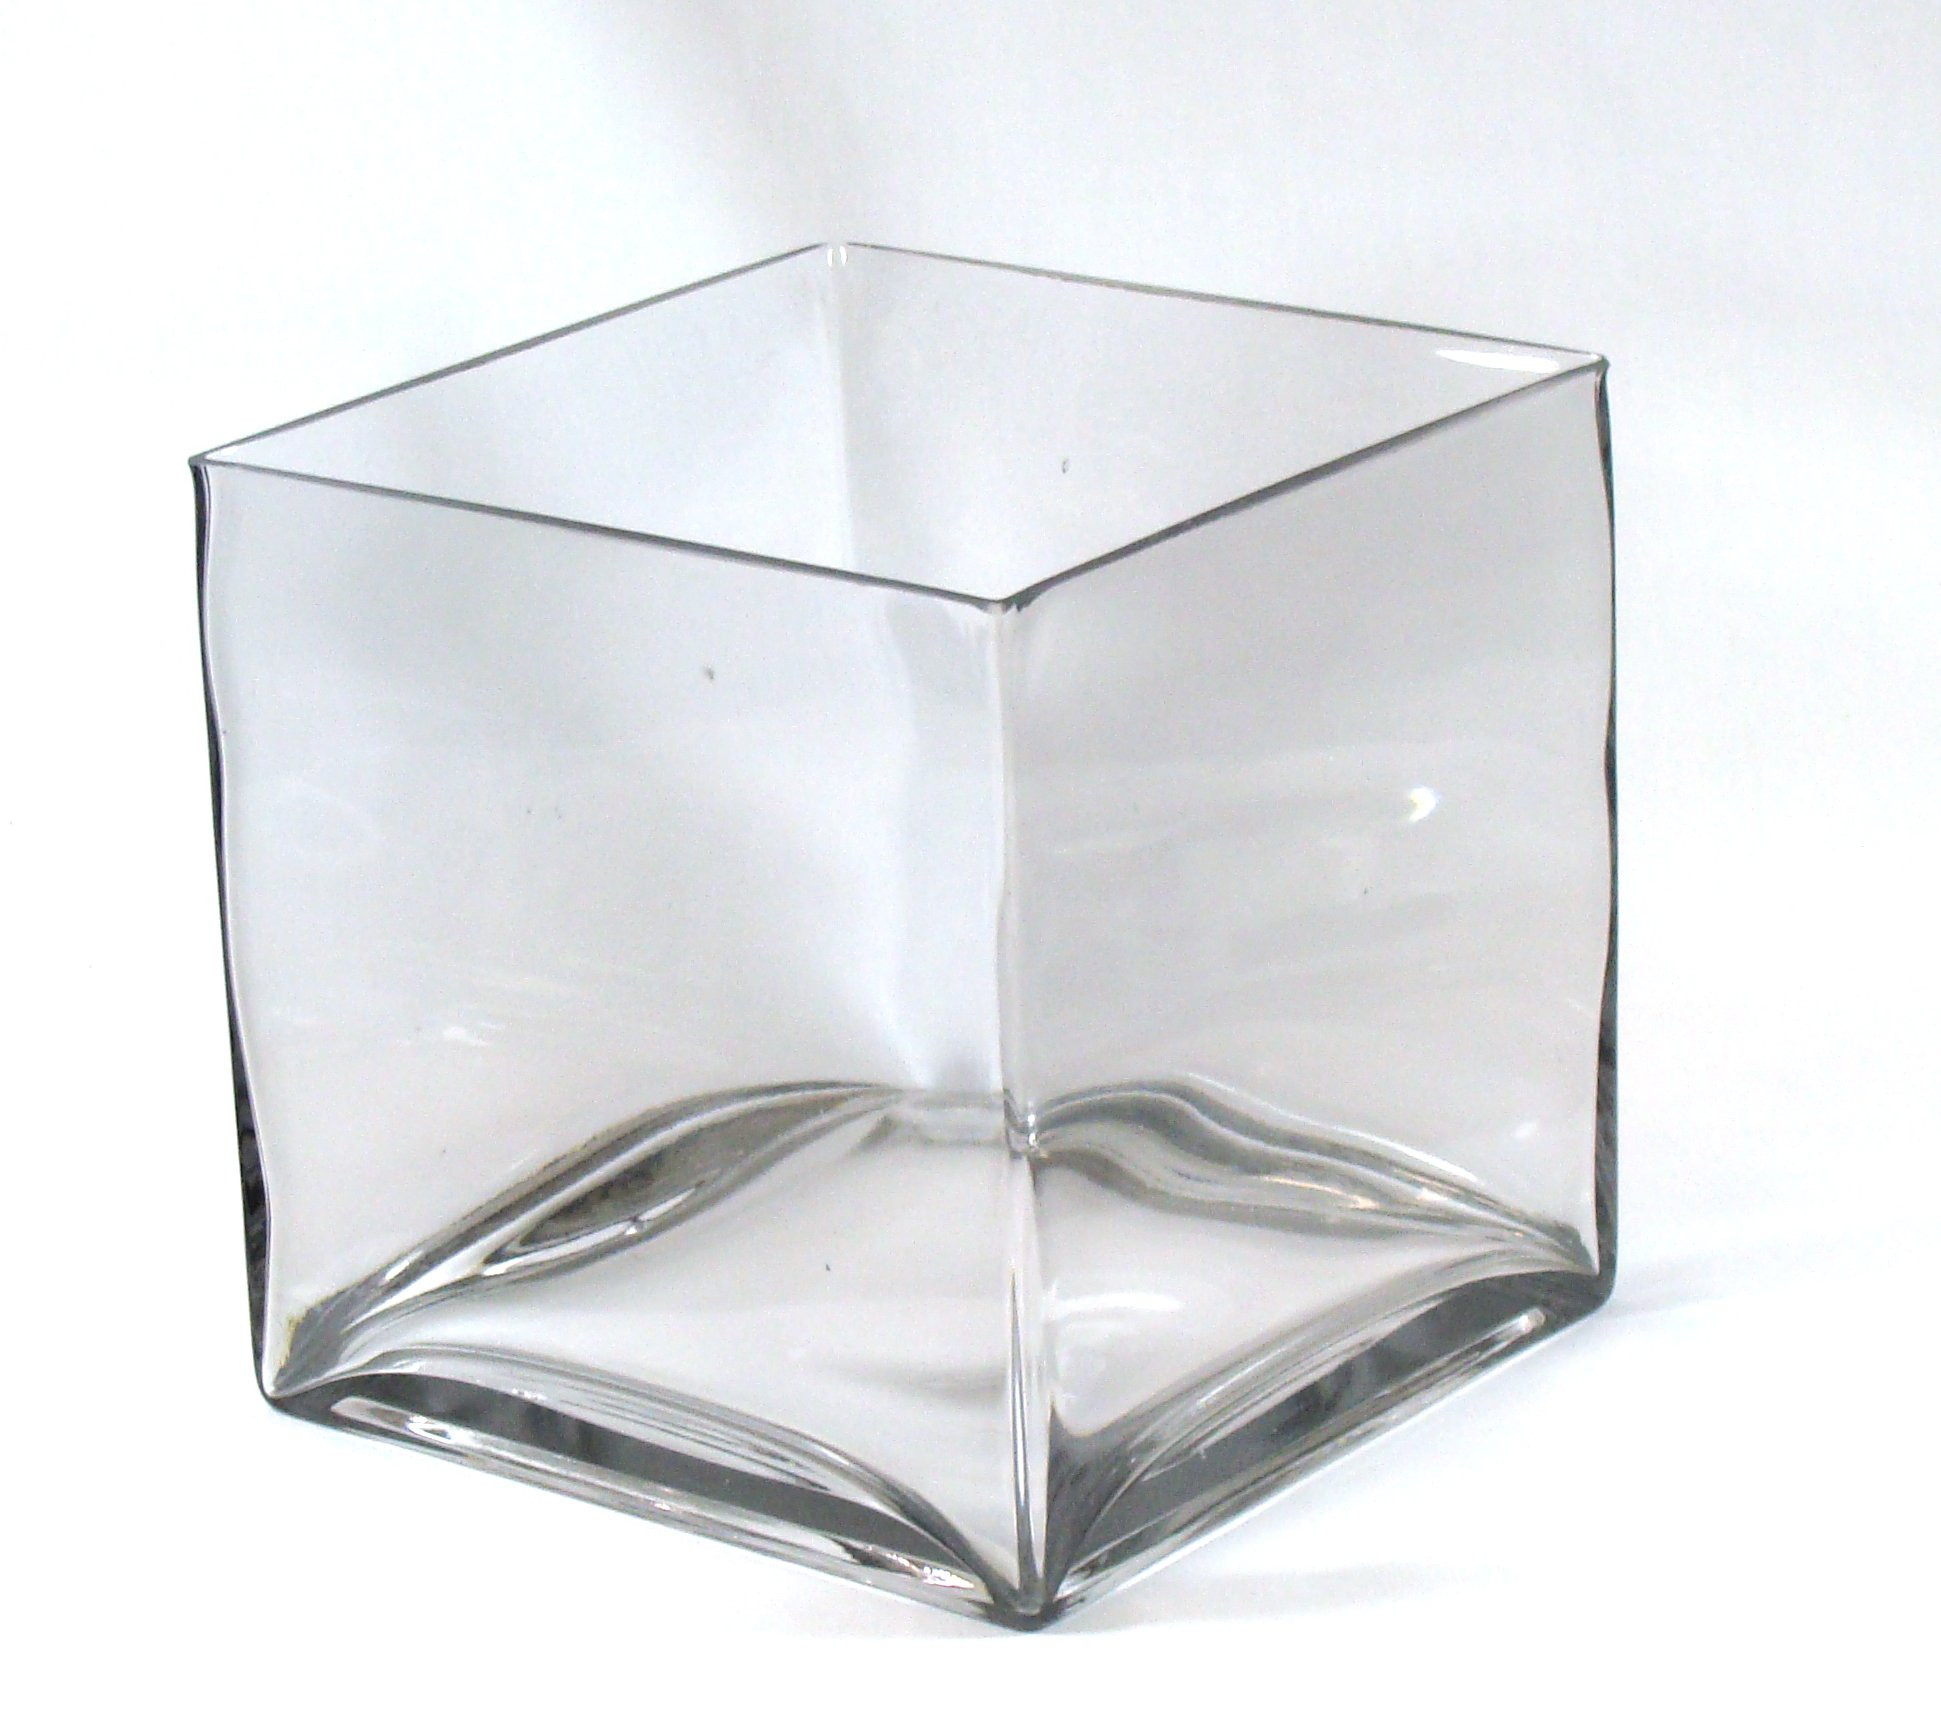 oversized clear glass floor vases of buy 8 inch round large glass vase 8 clear cylinder oversize throughout 8 square large glass vase 8 inch clear cube oversize centerpiece 8x8x8 candleholde